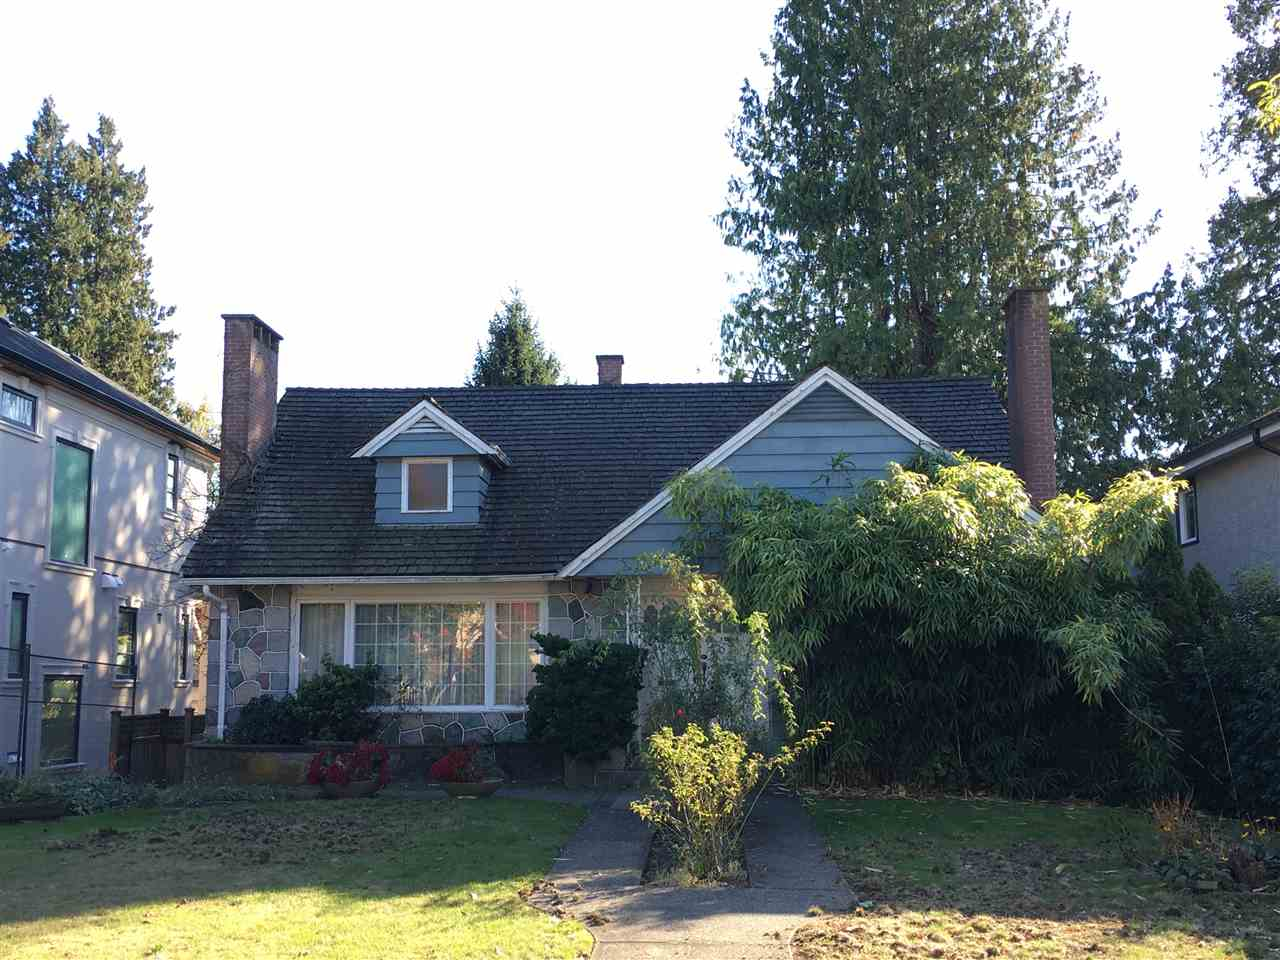 Main Photo: 1768 W 61ST Avenue in Vancouver: South Granville House for sale (Vancouver West)  : MLS® # R2120423